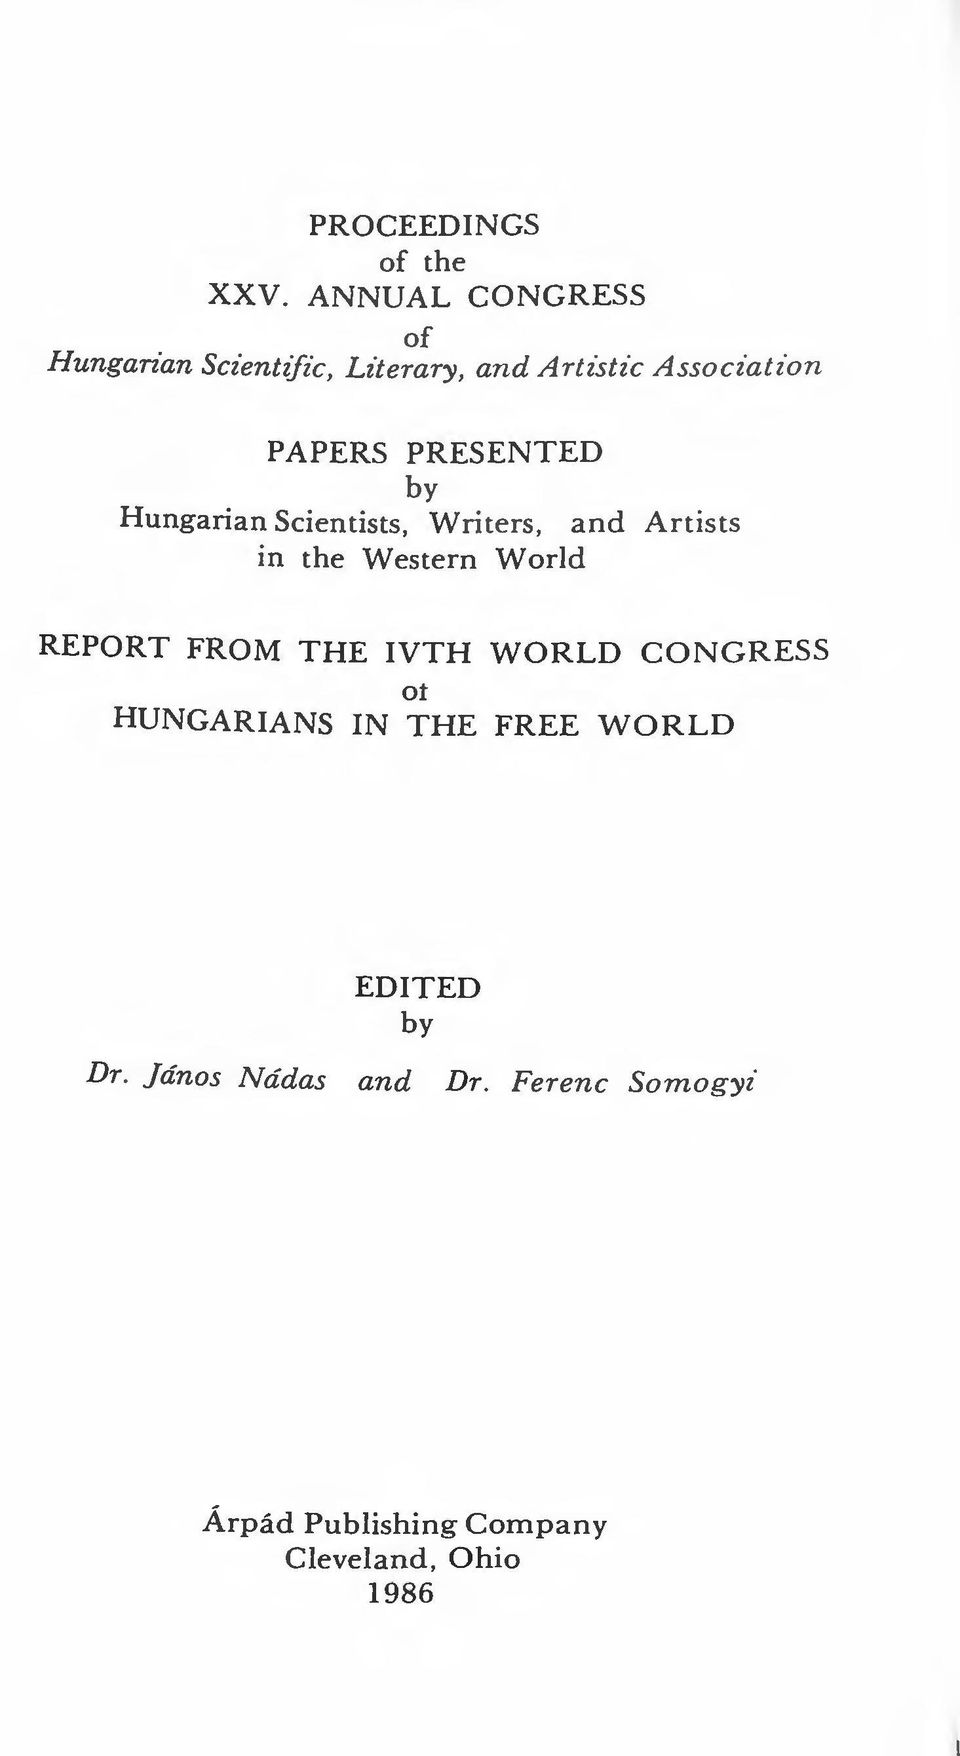 PRESENTED by Hungarian Scientists, Write rs, and Artists in the W estern W ori d REPORT